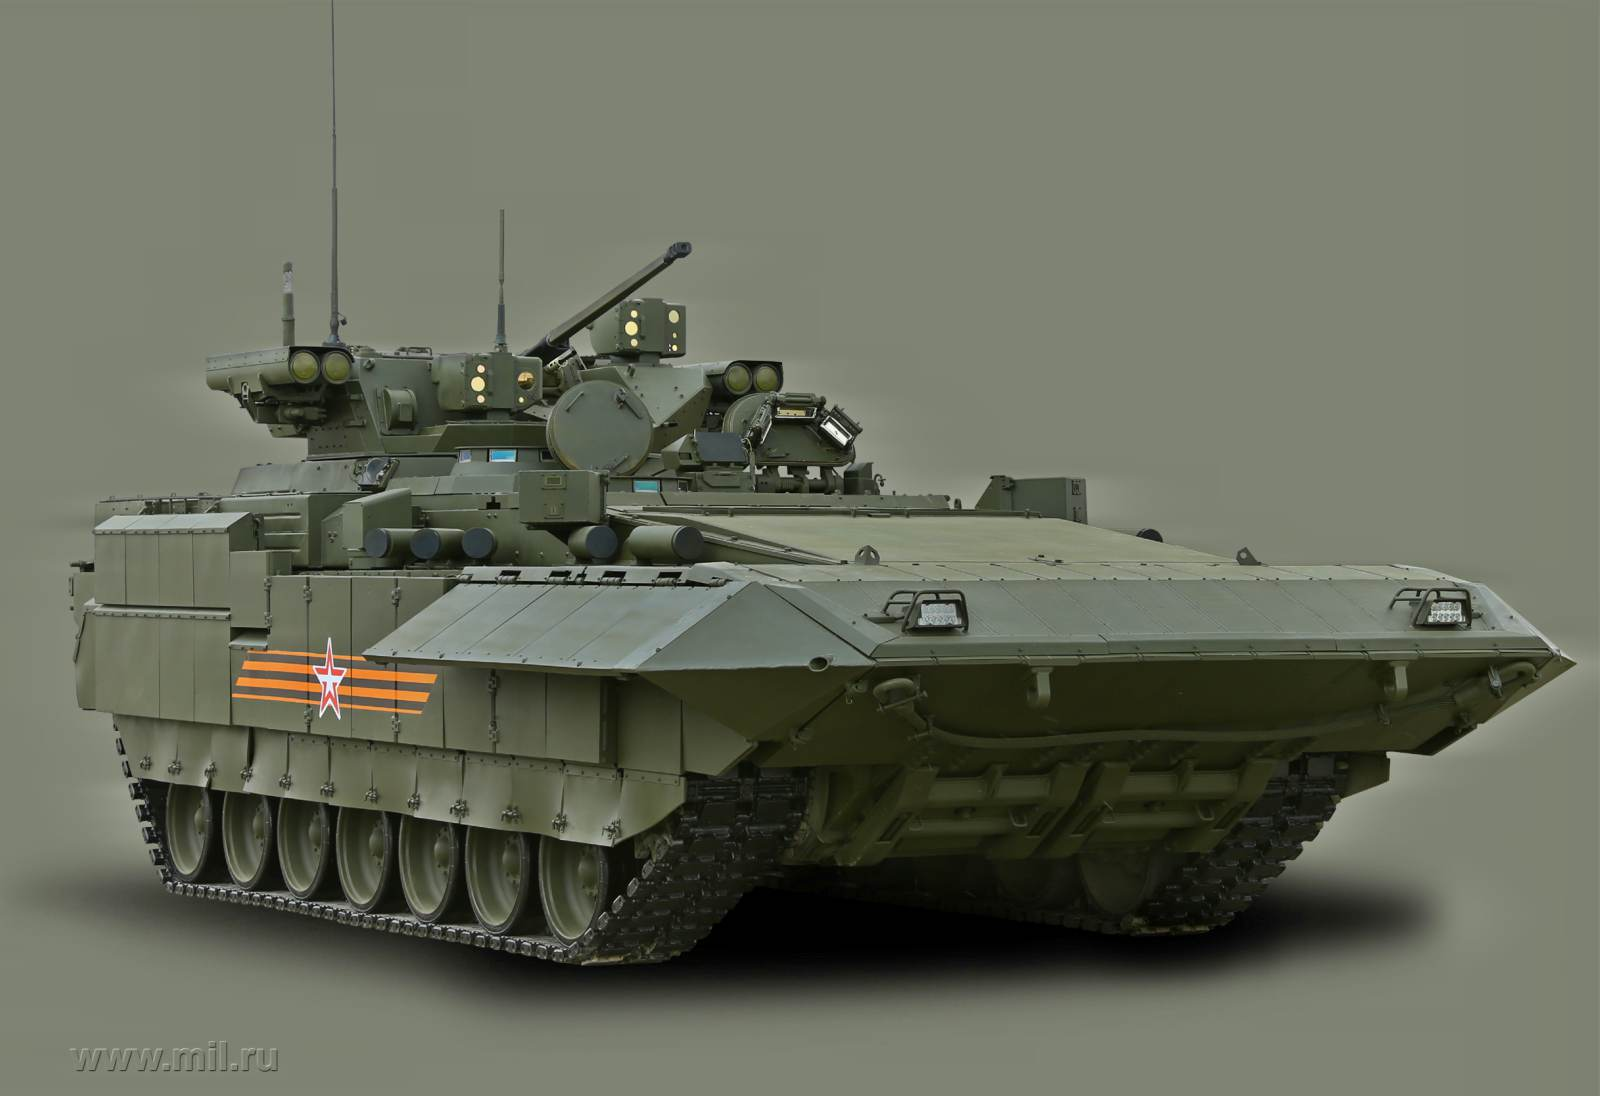 The Armata infantry fighting vehicle